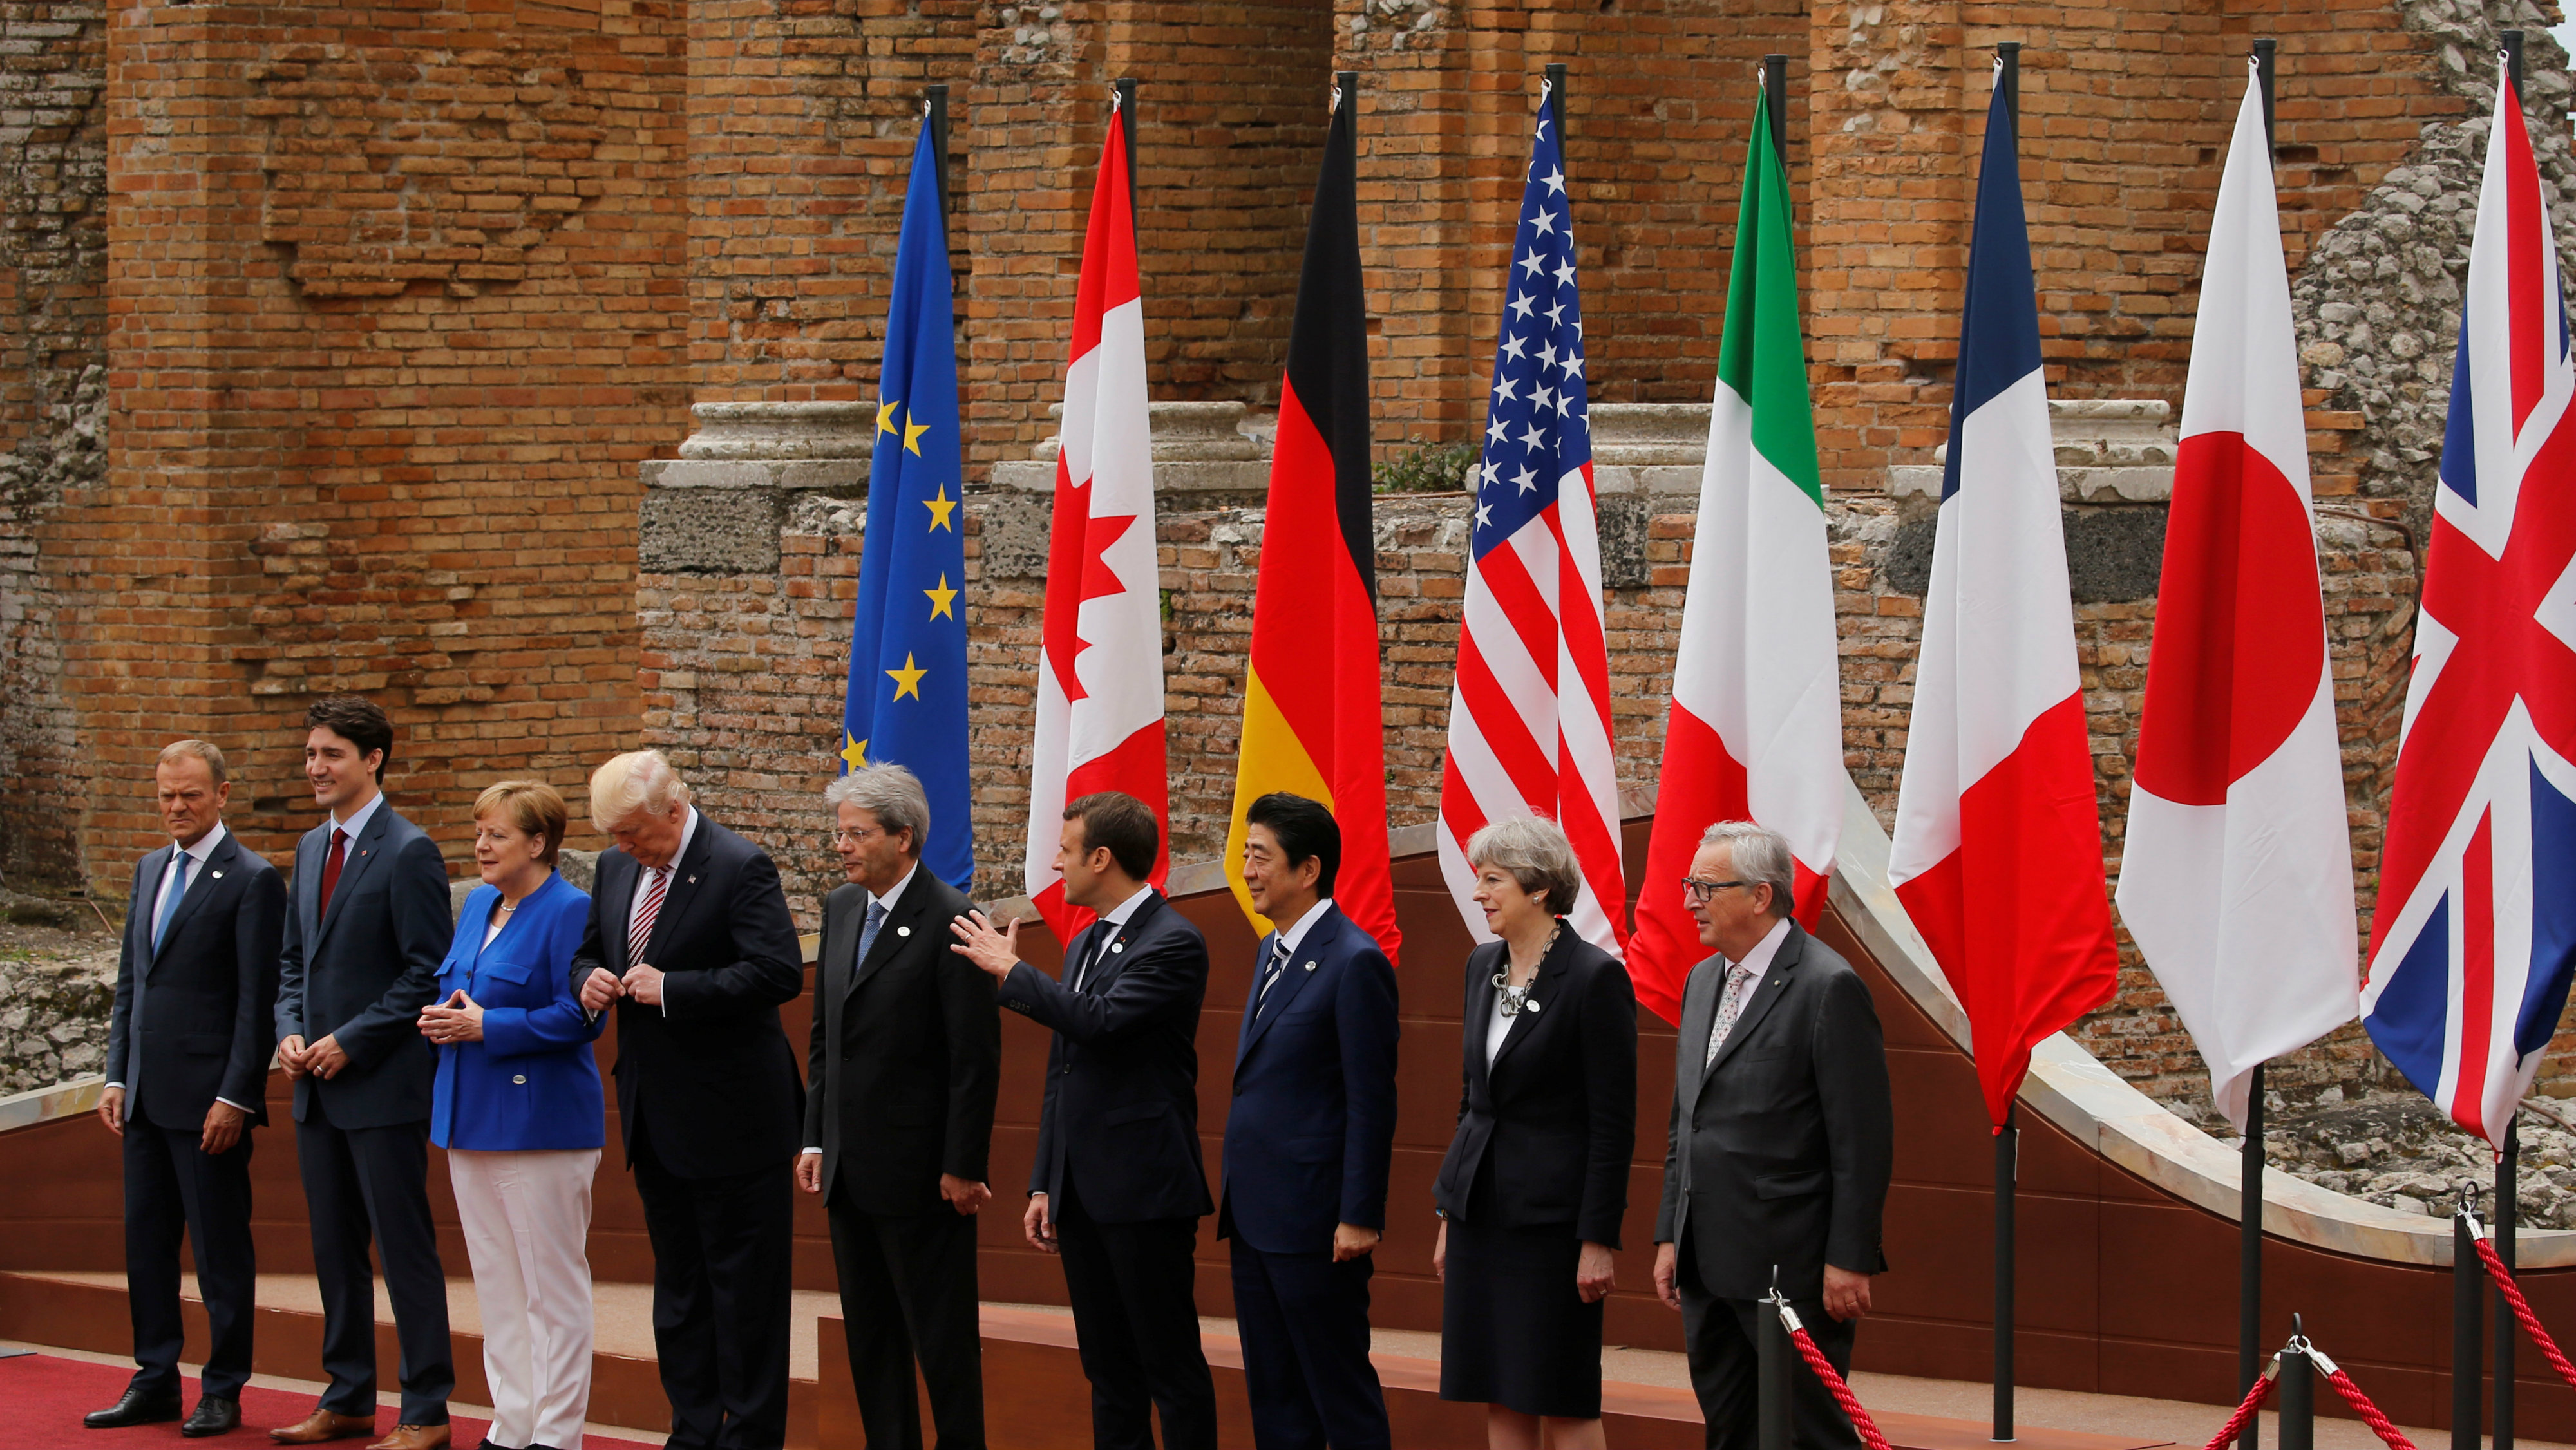 G7 leaders at summit in Sicily in 2017